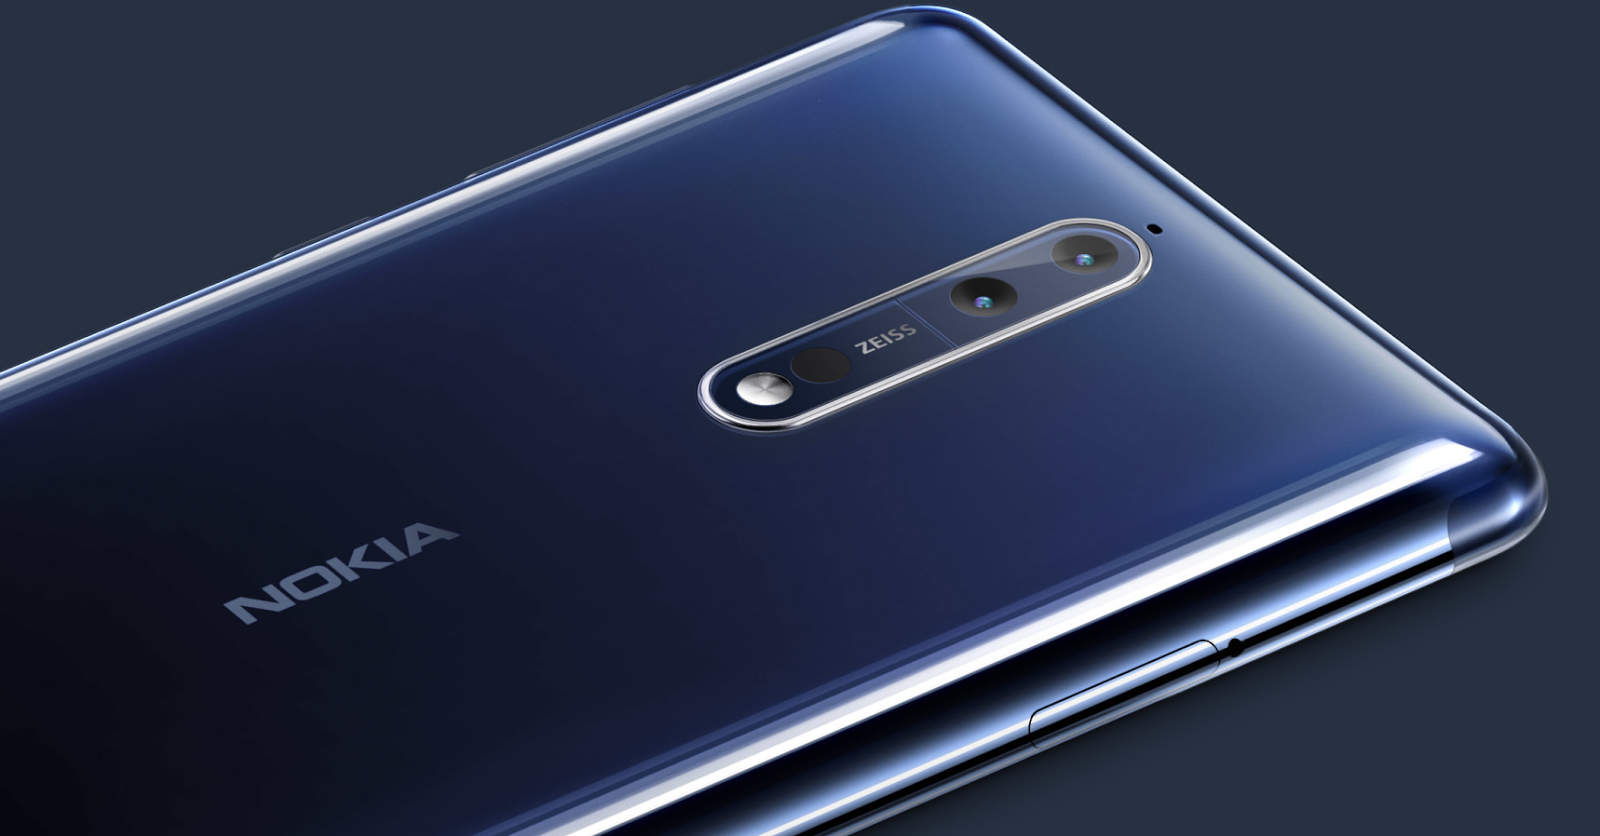 Latest Nokia-Branded Phone Expected by Early September